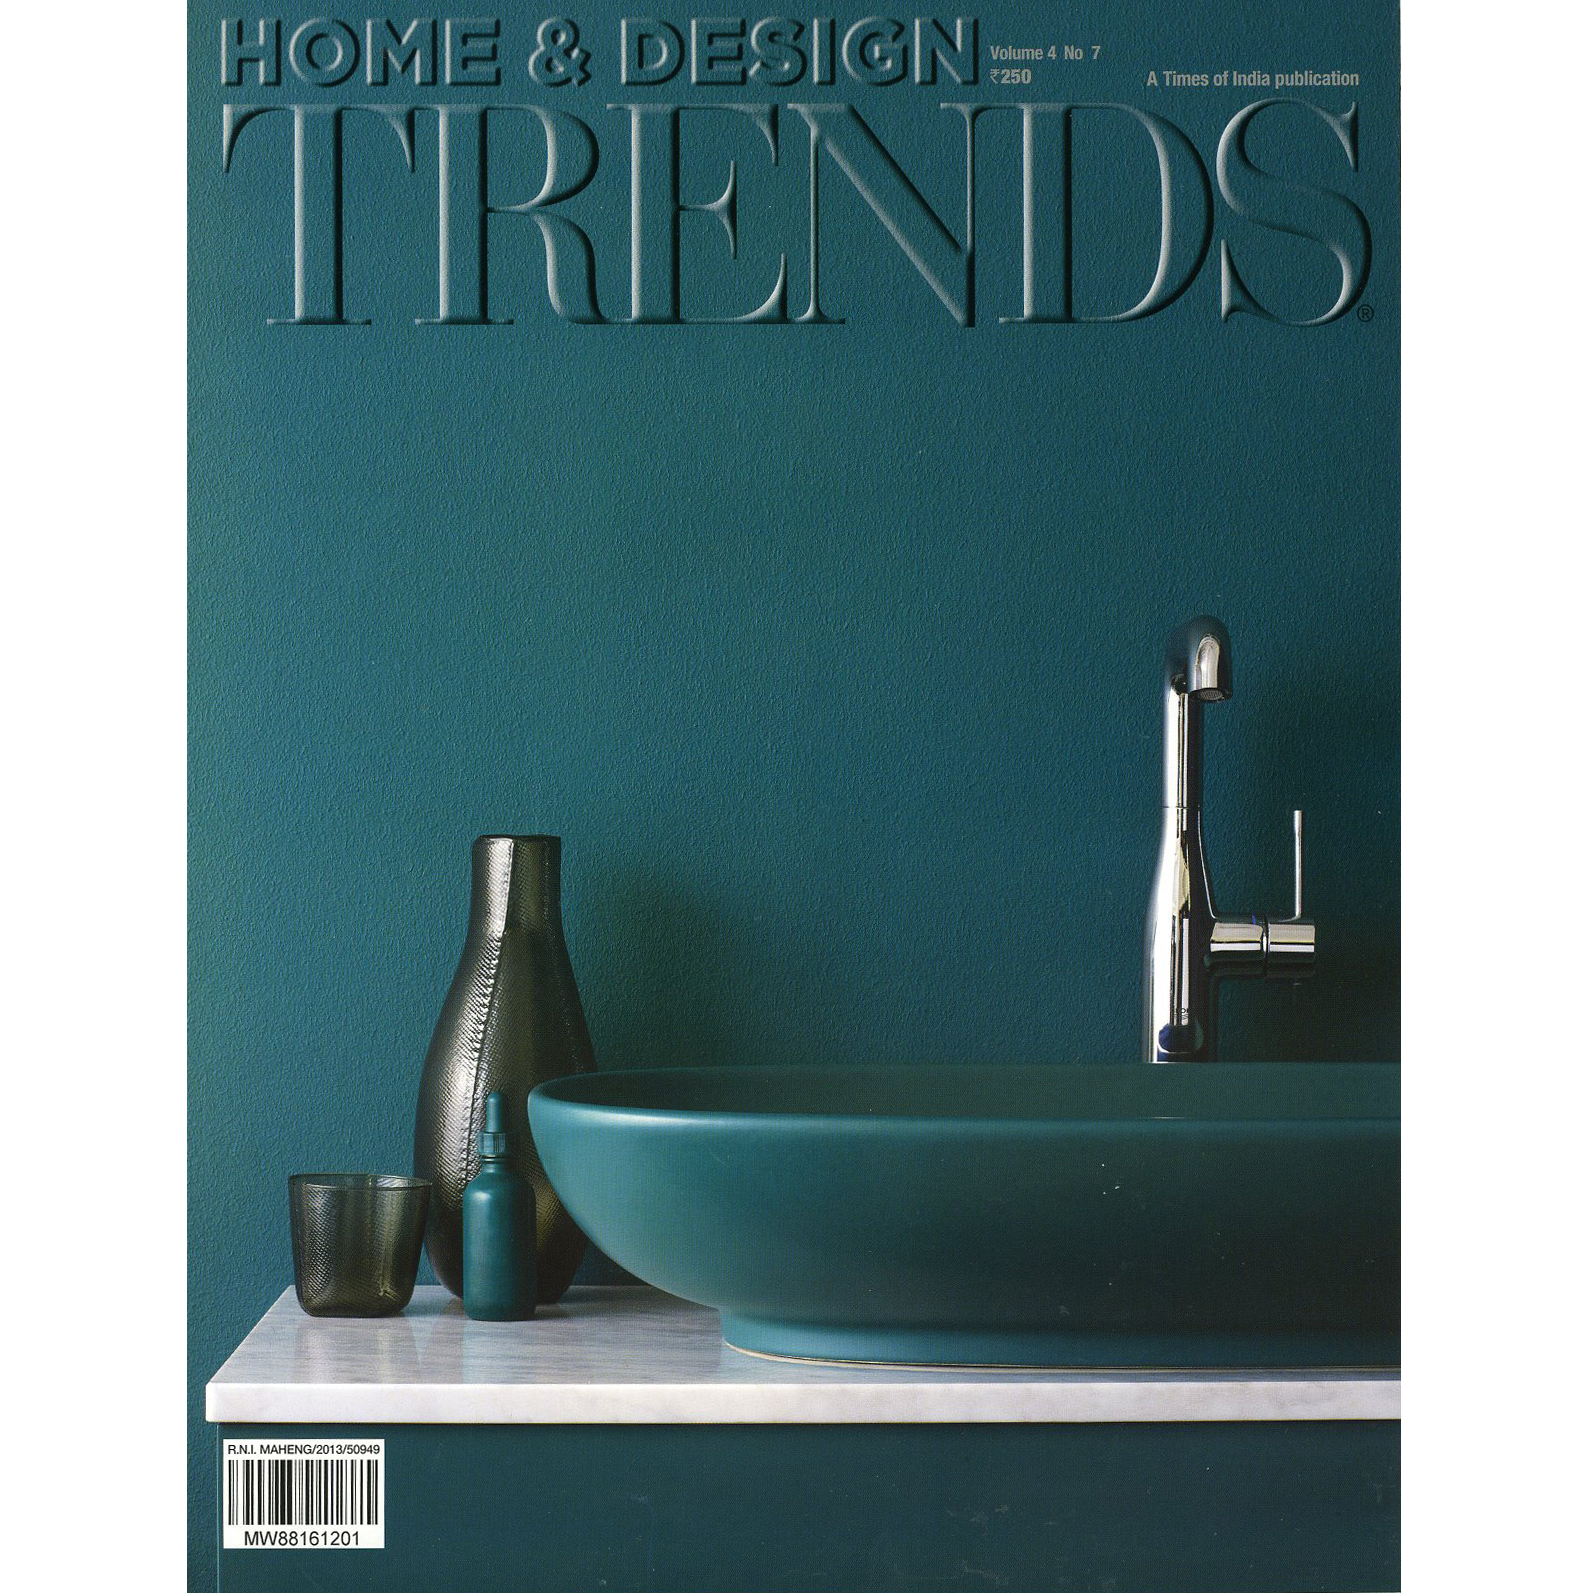 H&D Trends. 2016 (Printed Publication)